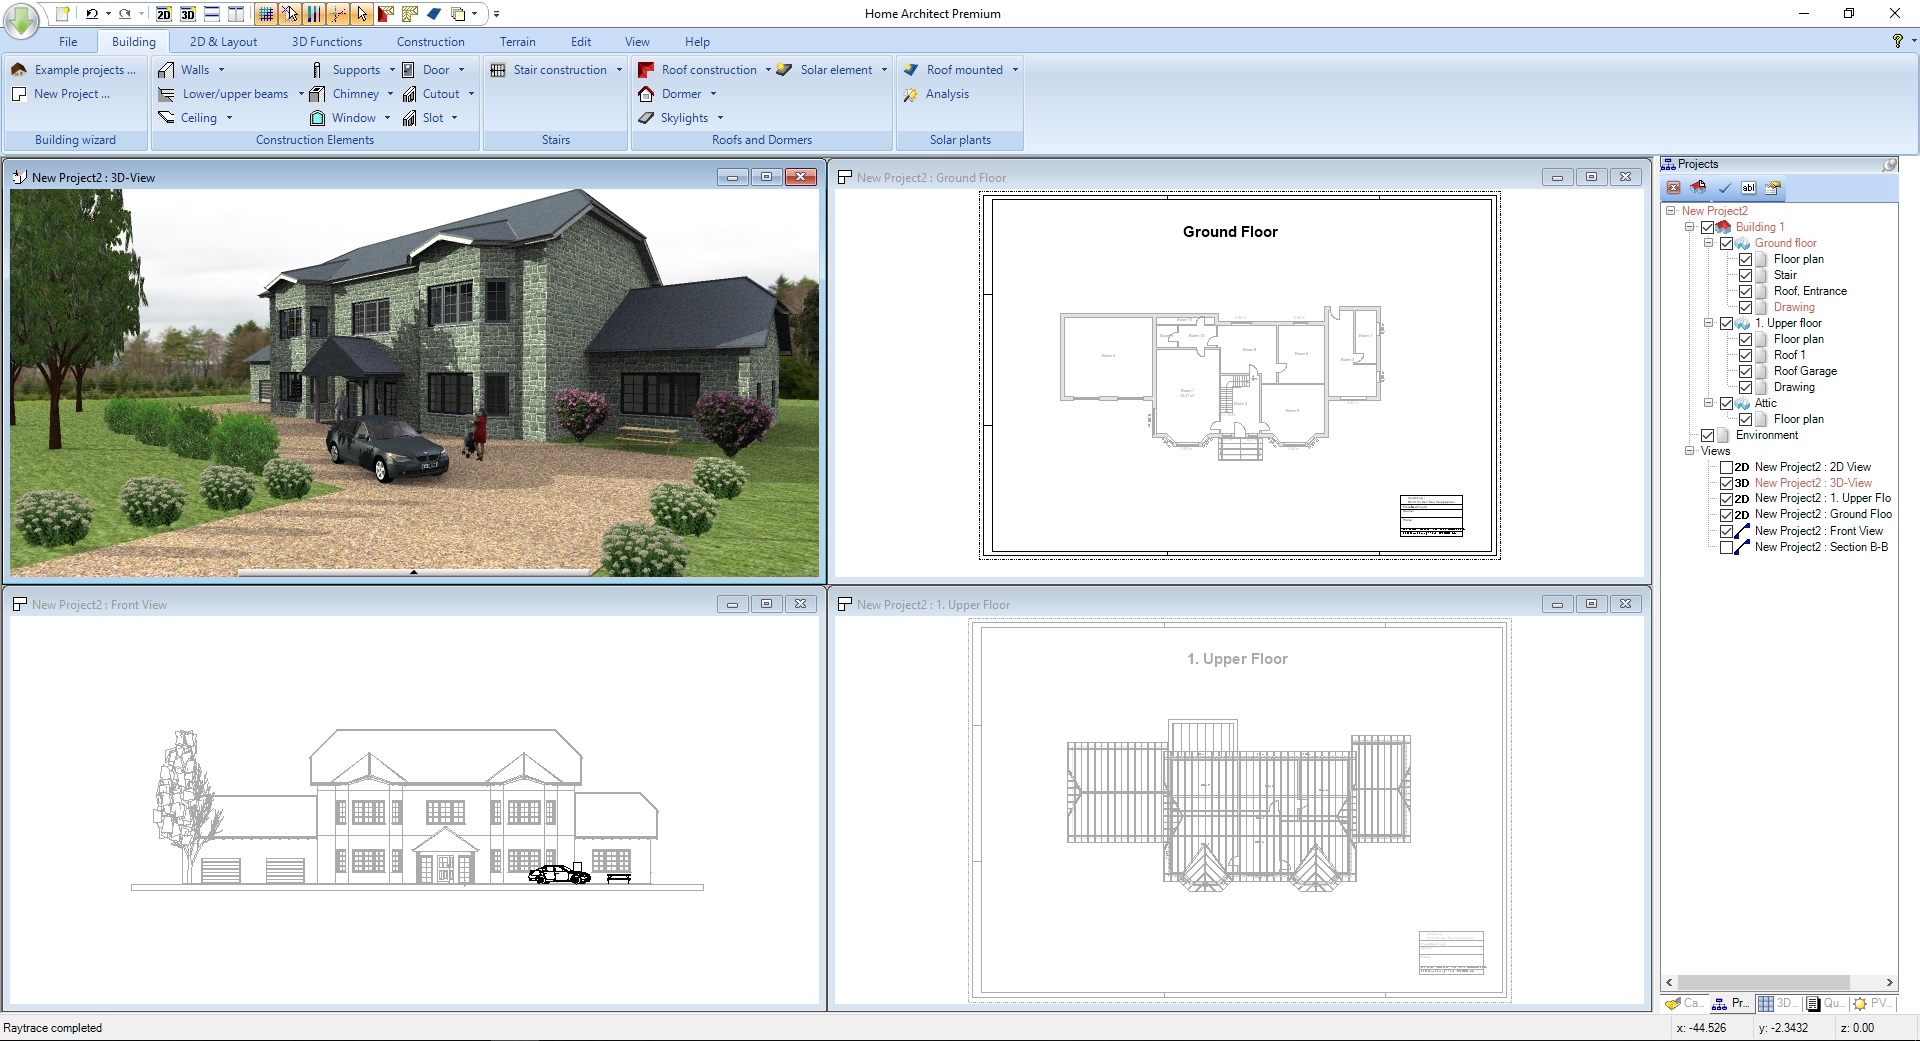 Home Architect - Design your floor plans in 3D on Steam on 1920s design, 1920s photography, 1920s fireplace mantel, 1920s small houses, 1920s business, 1920s travel, 1920s magazines, 1920s flooring, 1920s education, 1920s windows, 1920s art, 1920s architecture, 1920s farmhouse living room, 1920s new york luxury apartments, 1920s wisconsin farmhouse front porch, 1920s building, small historic home plans, 1920s cleaning, 1920s schoolhouse, 1920s furniture,